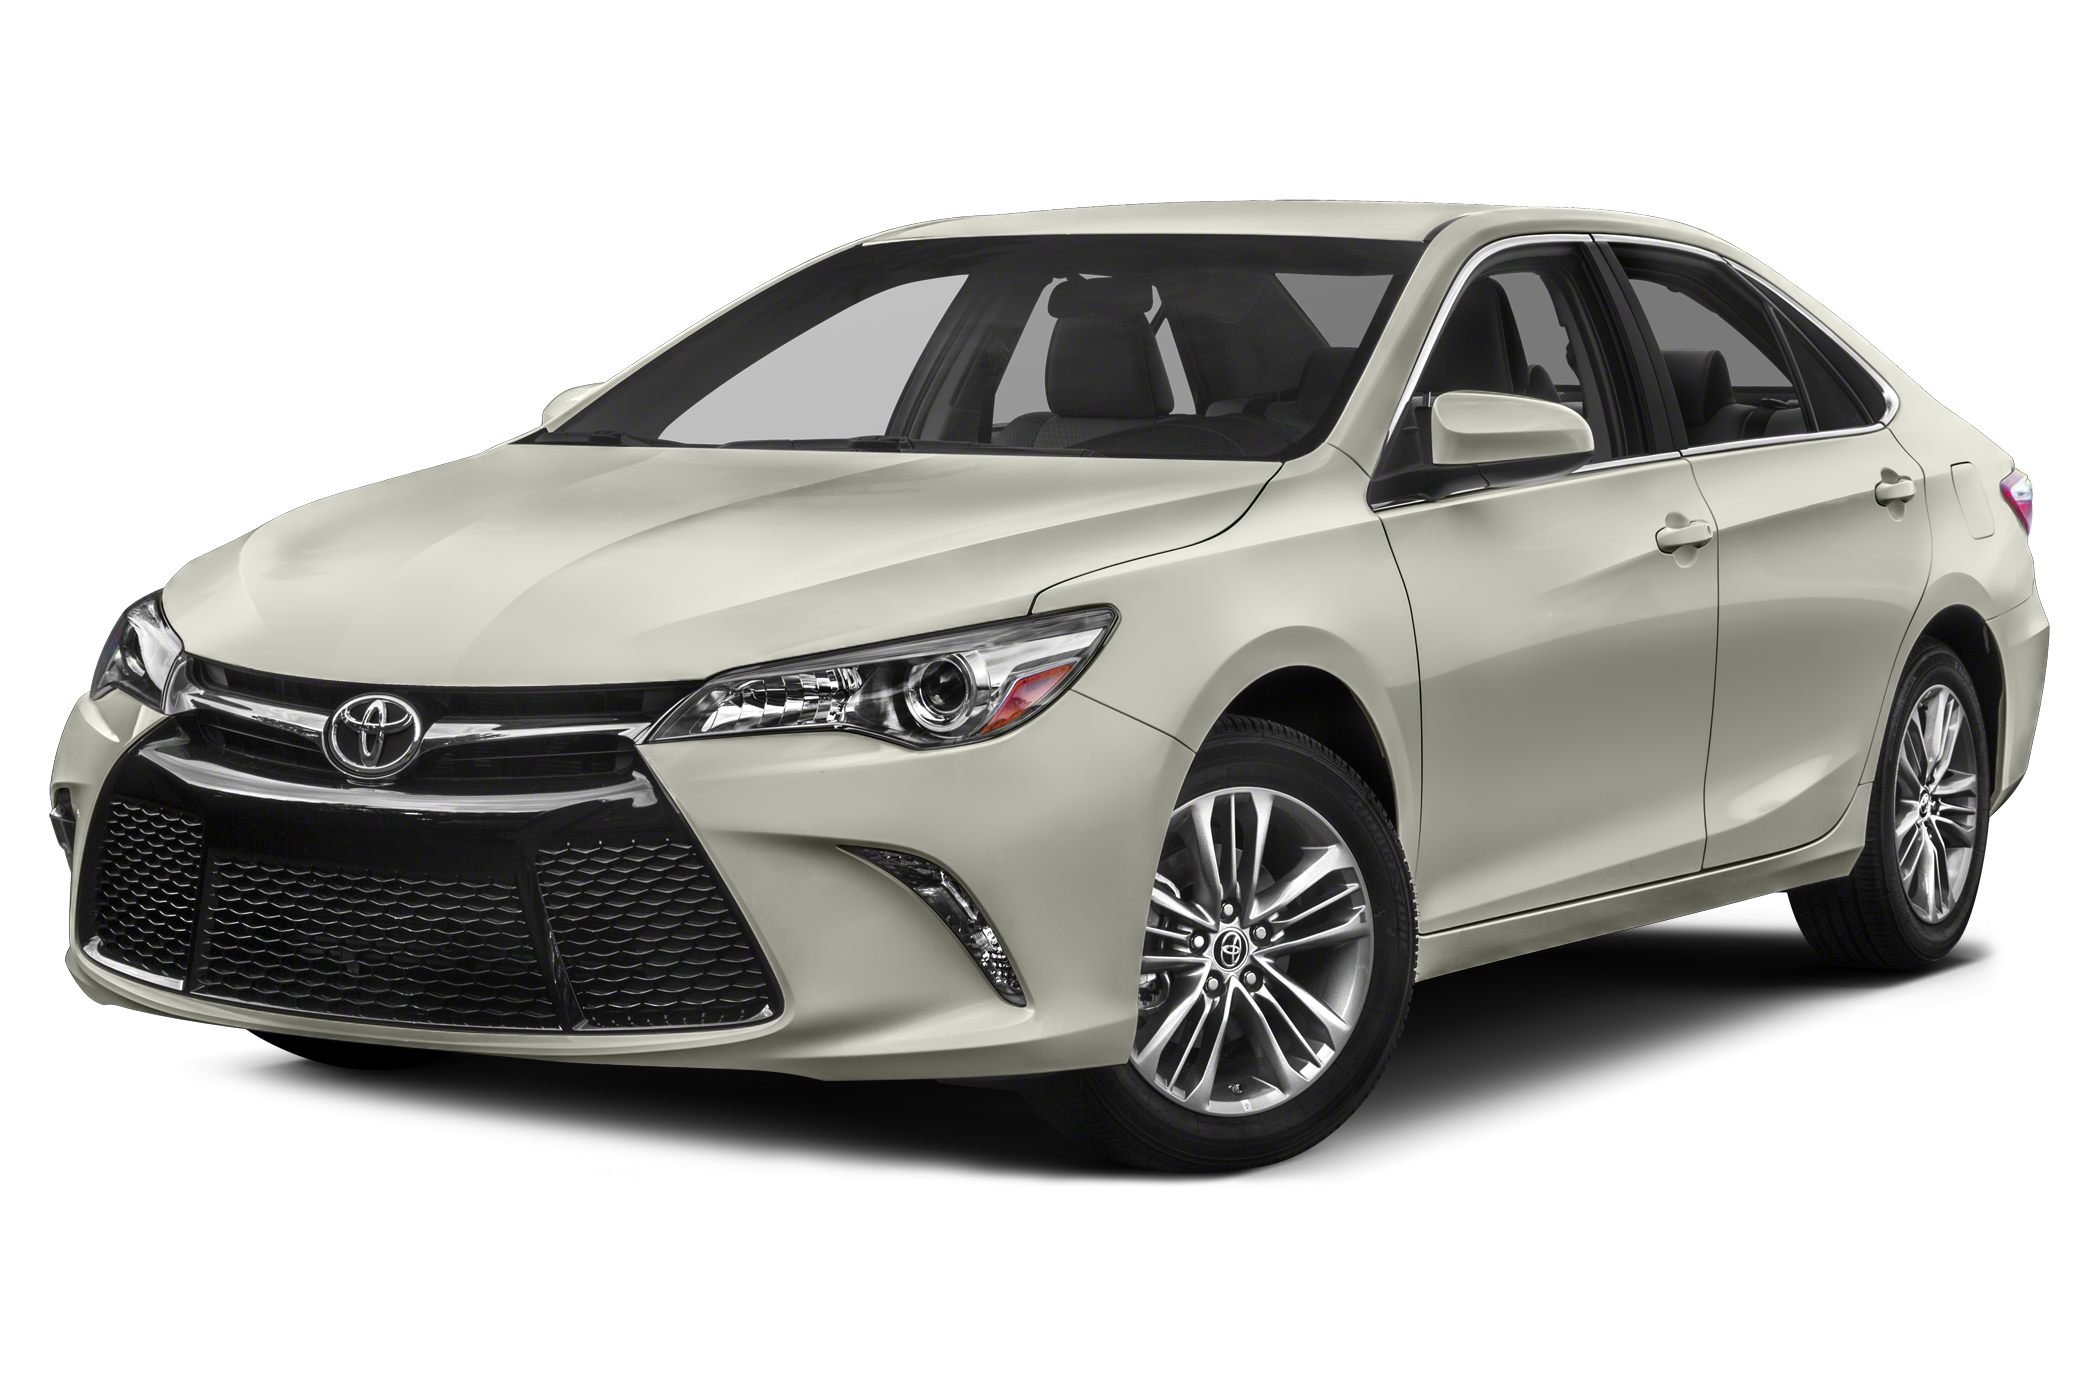 2015 Toyota Camry SE Sedan for sale in Superior for $25,805 with 152 miles